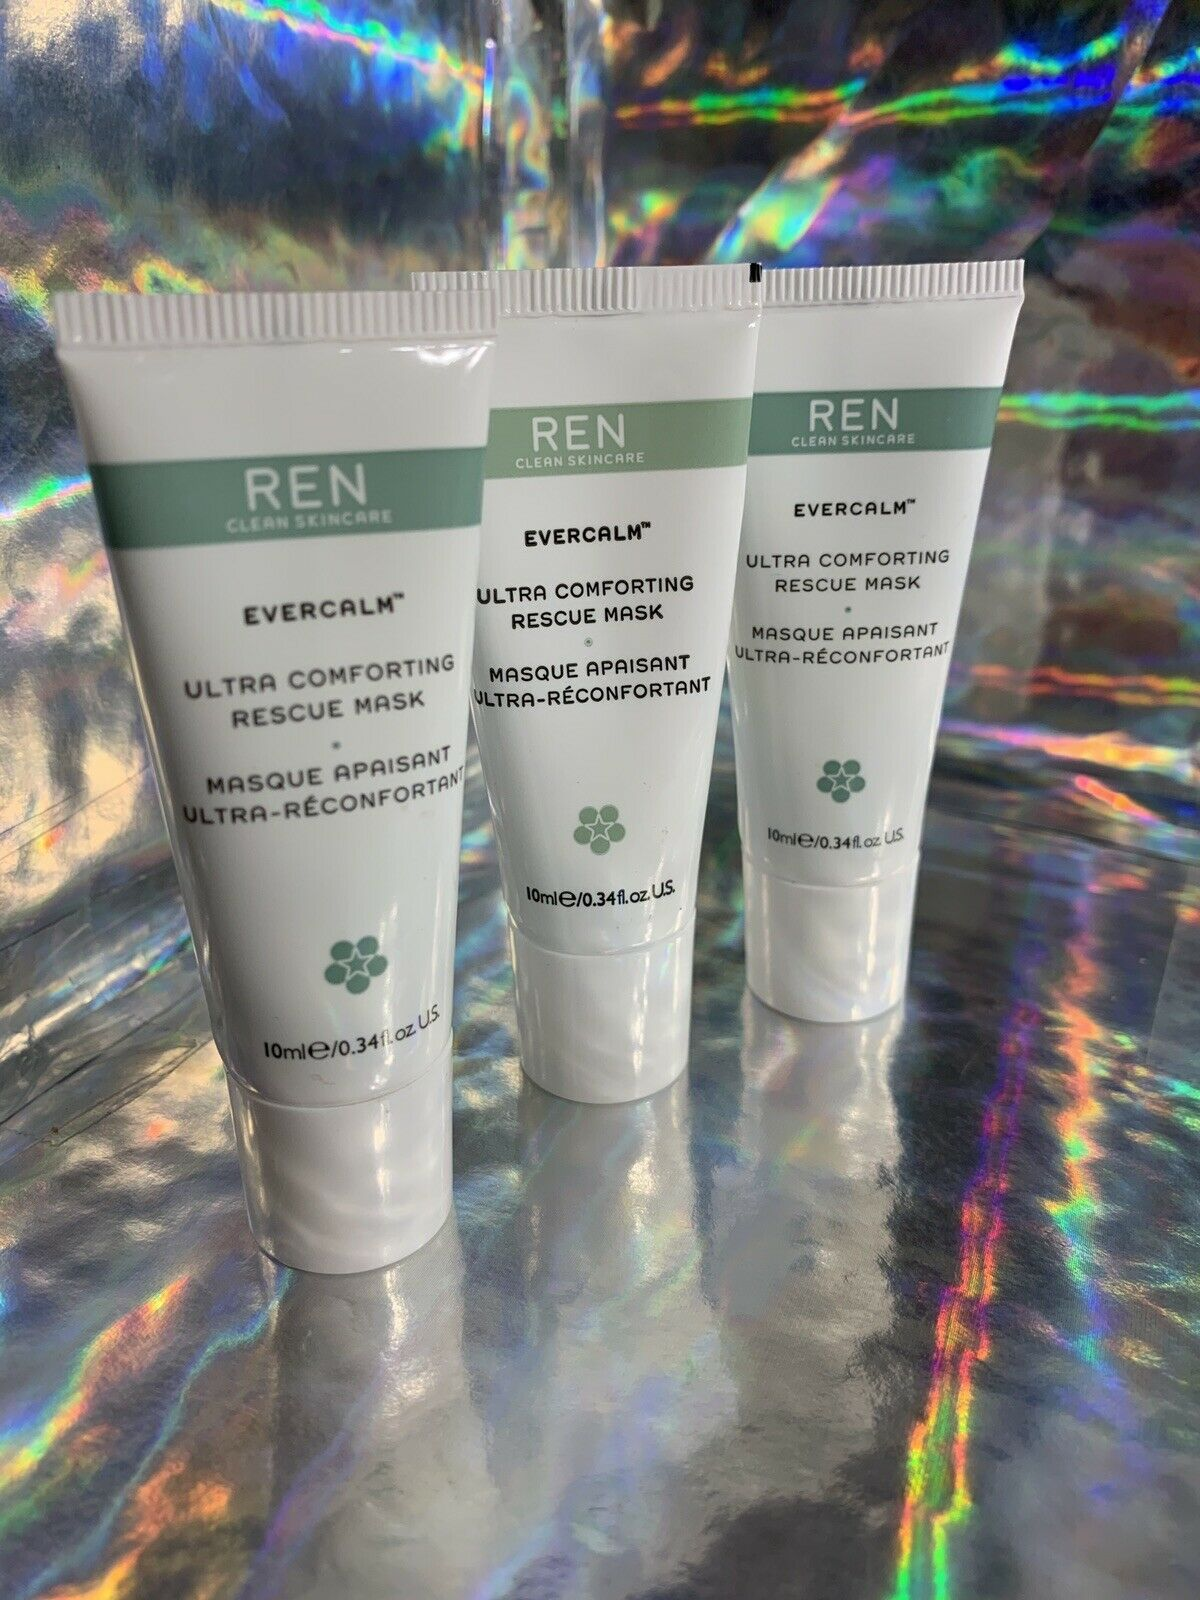 Lot Of 3 Evercalm Ultra Comforting Rescue Mask 10mL Clean Skincare + Free TONER